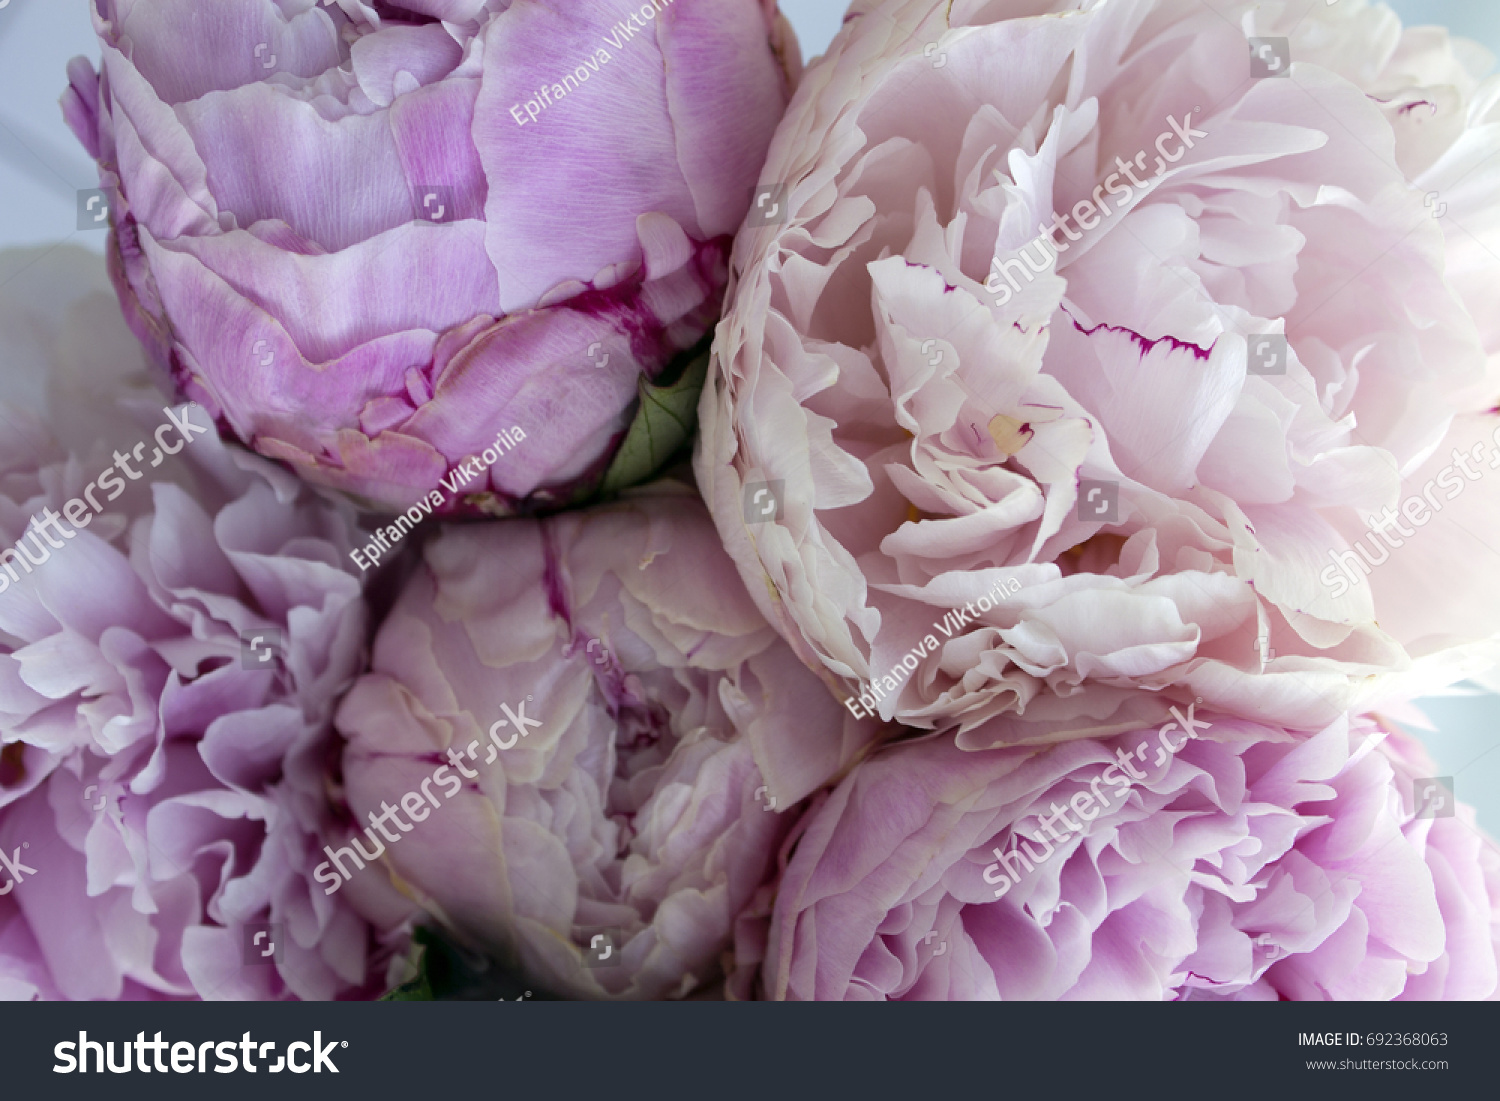 closeup fresh bunch pink peonies peony stock photo (edit now